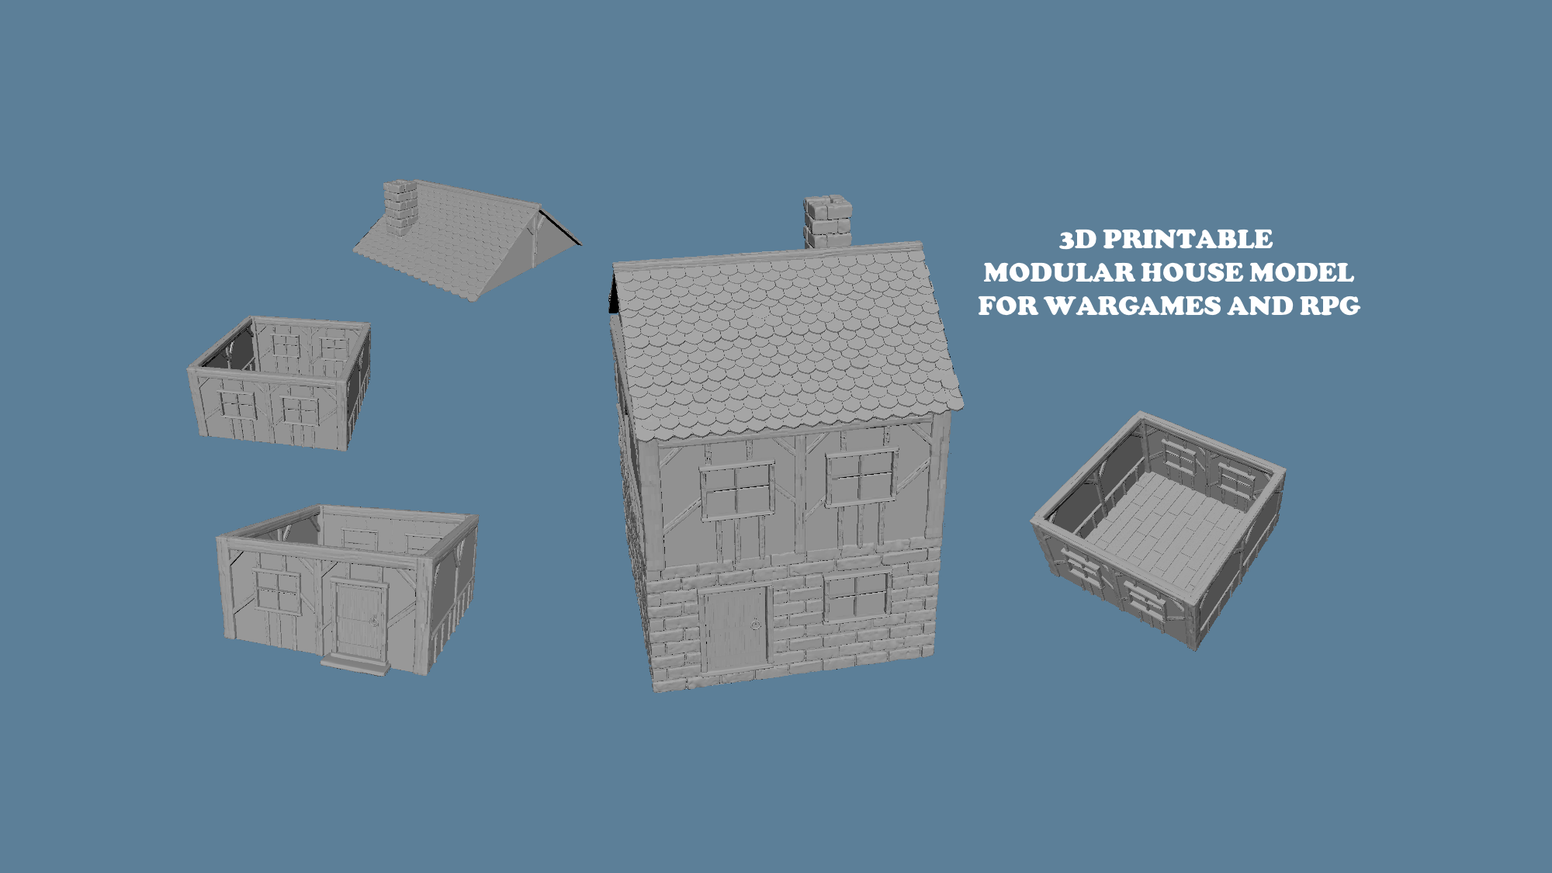 3D PRINTABLE STL OBJ BUILDINGS FOR WARGAMES AND RPG by antonio 3d